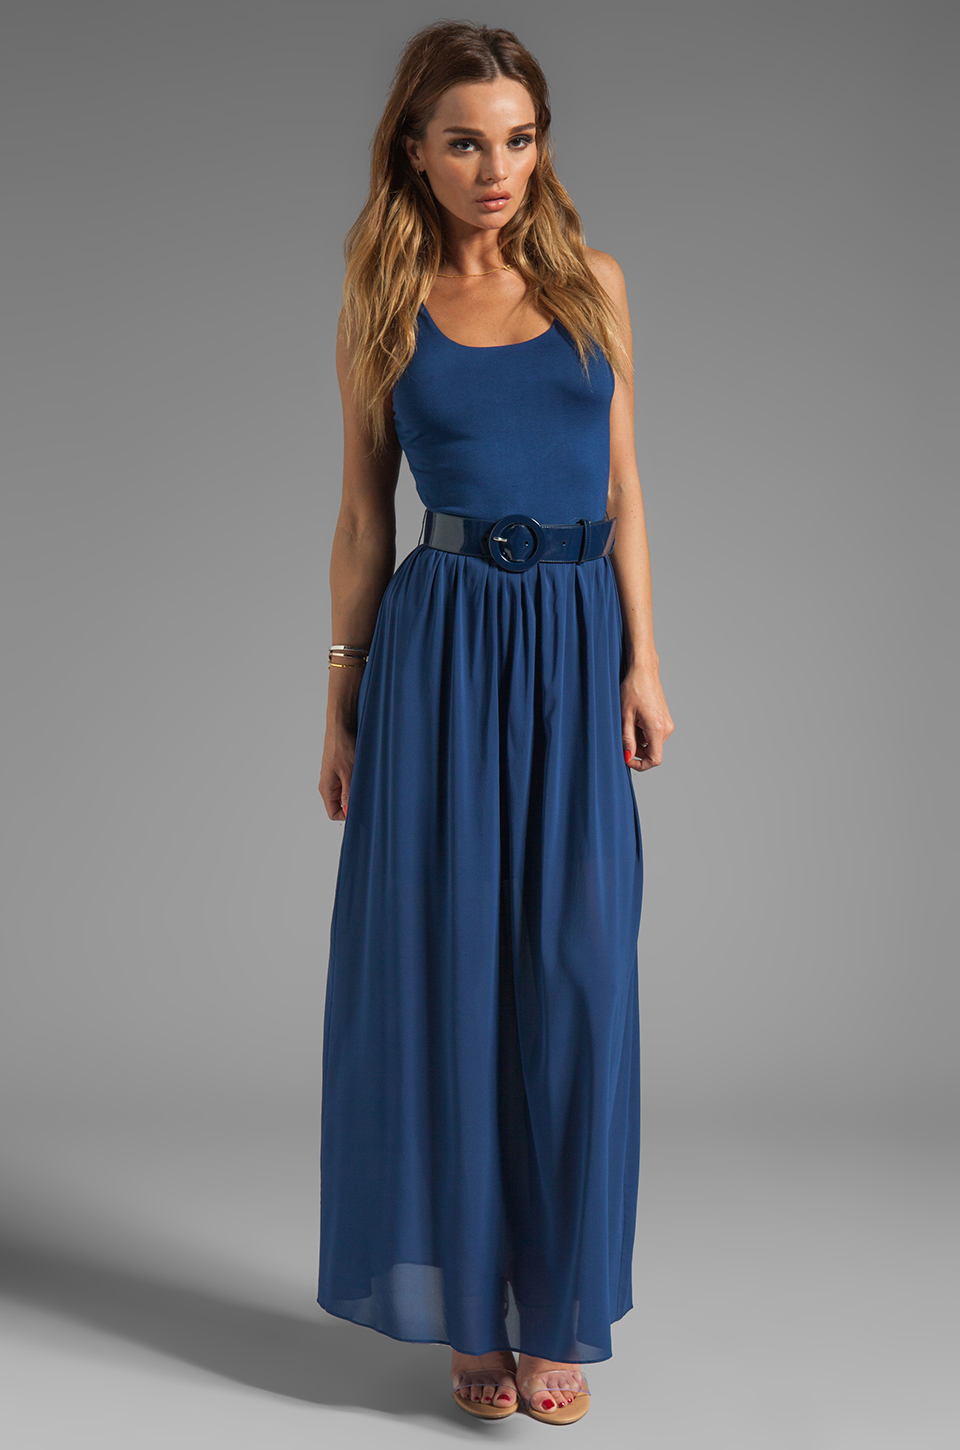 Maxi dress and belt